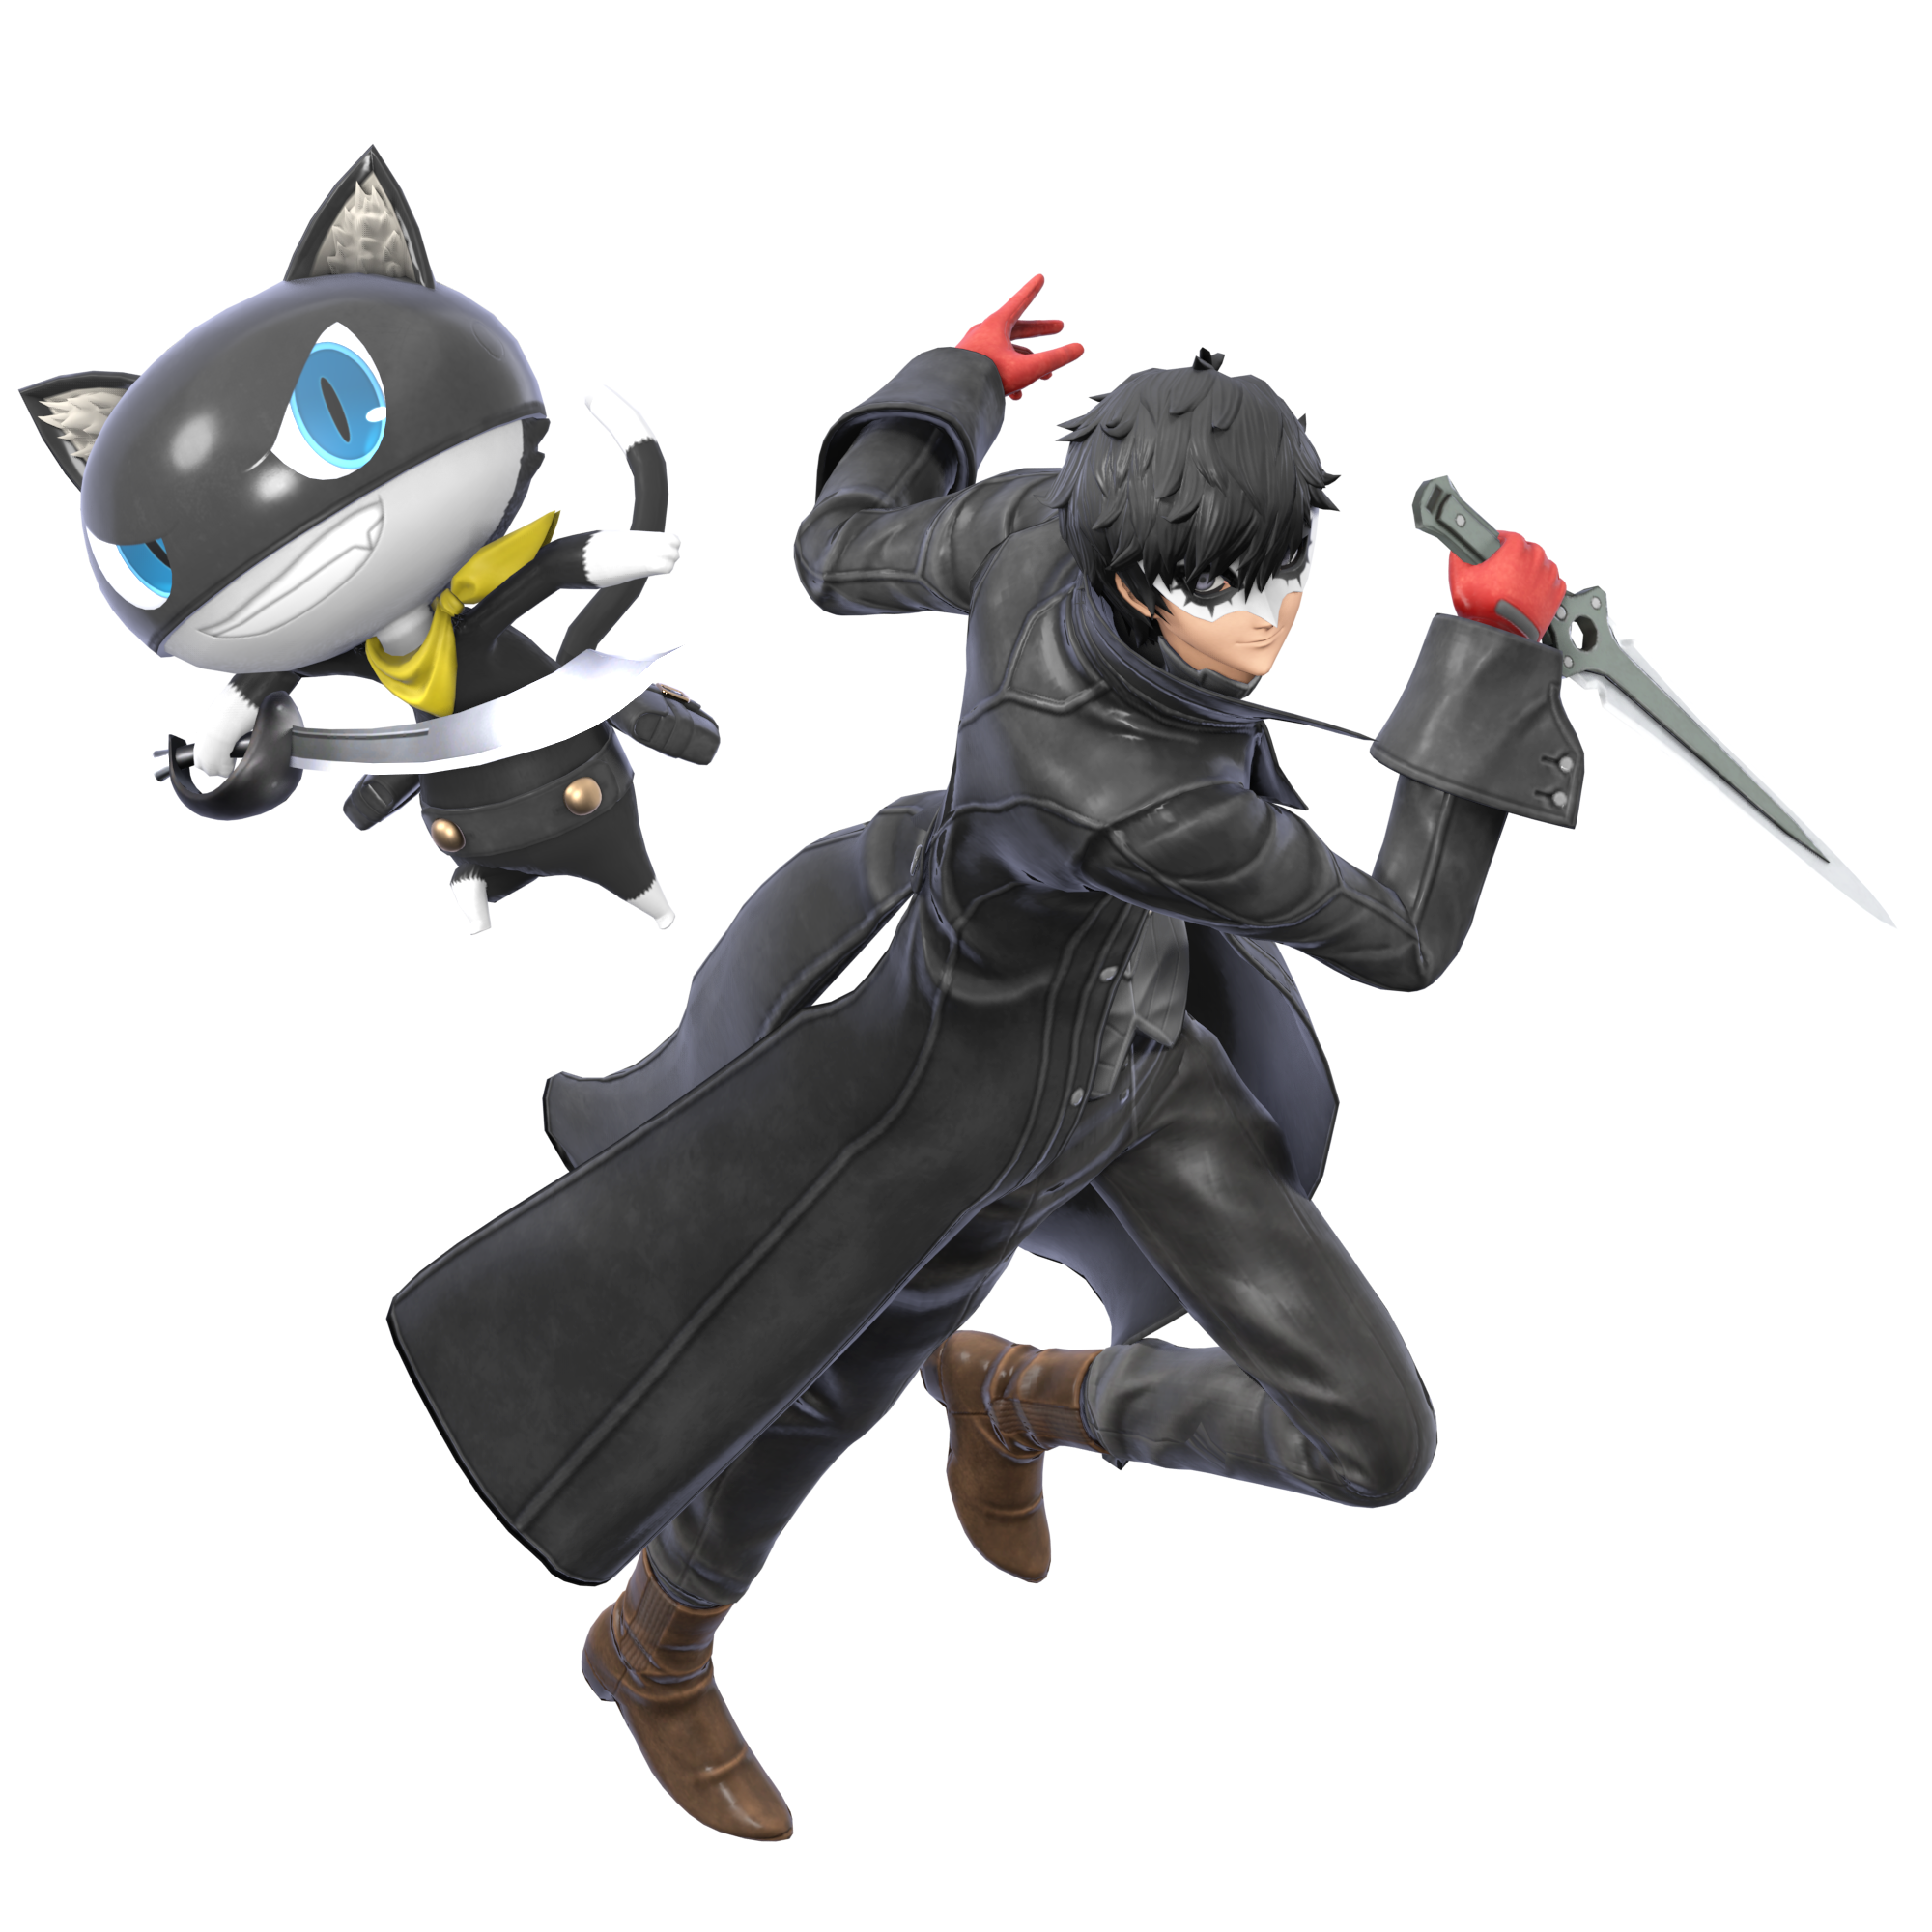 Joker And Morgana By Unbecomingname On Deviantart